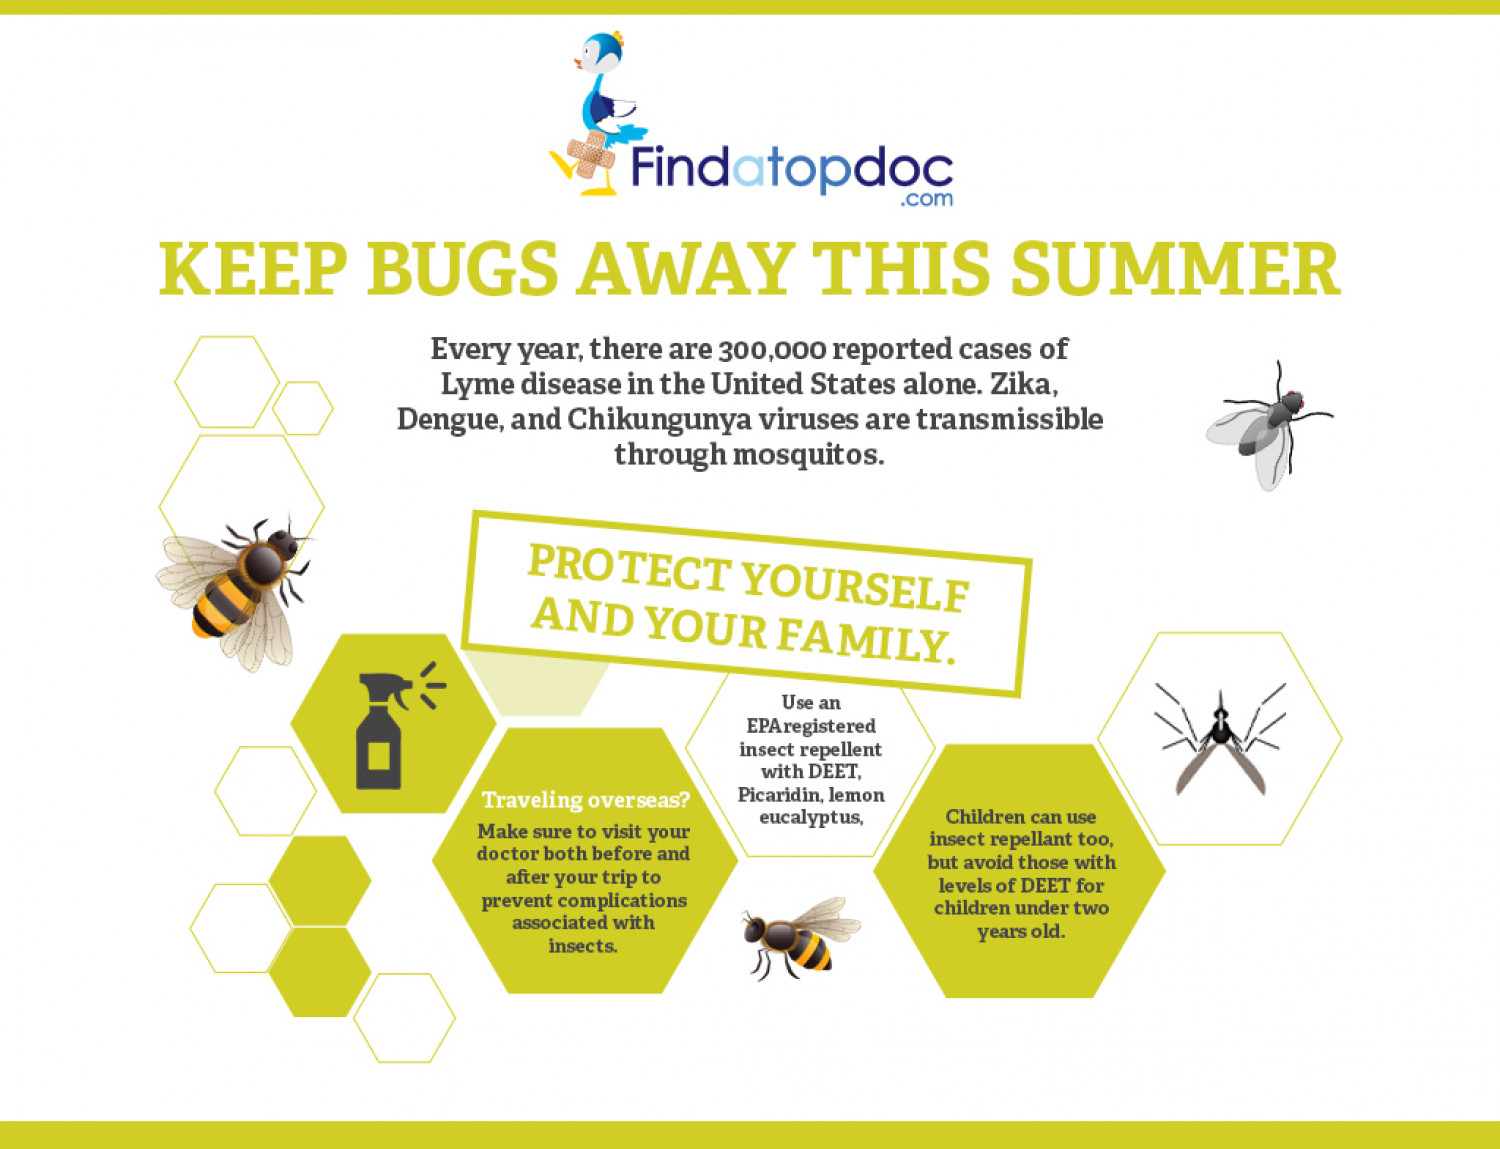 How to Keep Bugs Away This Summer Infographic